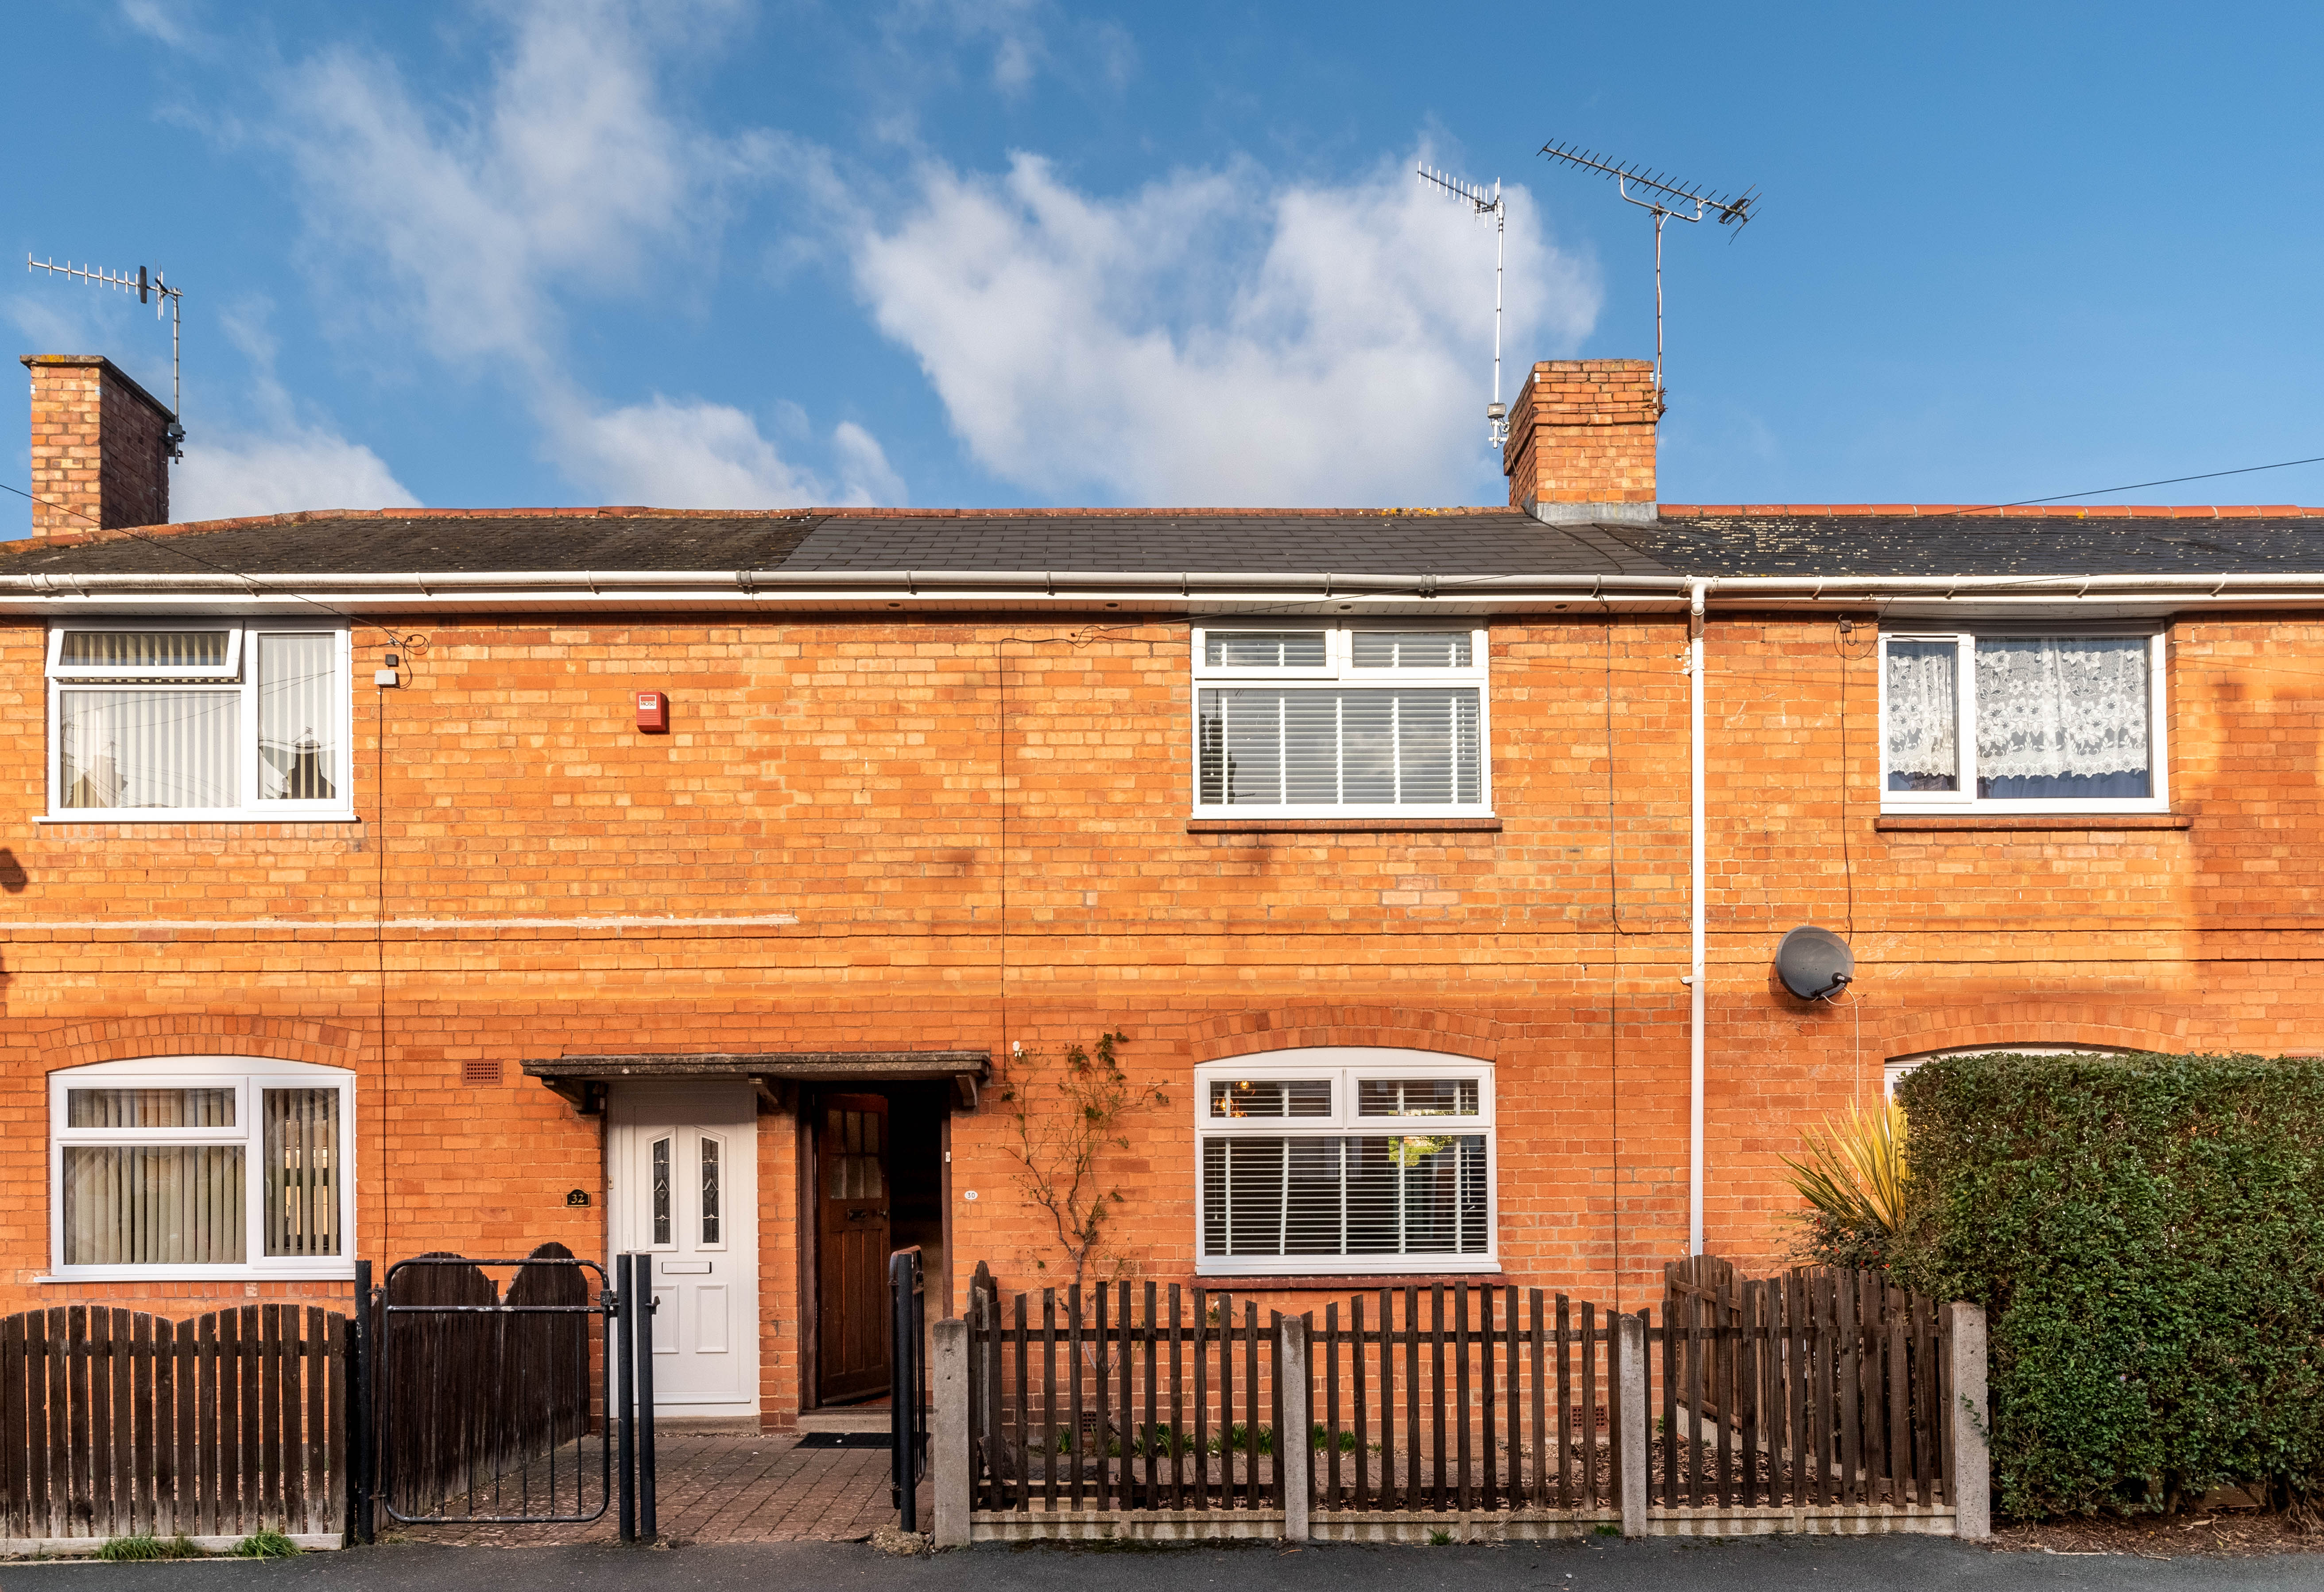 30 Rowley Hill Street, St Johns, Worcester, Worcestershire, WR2 5LJ